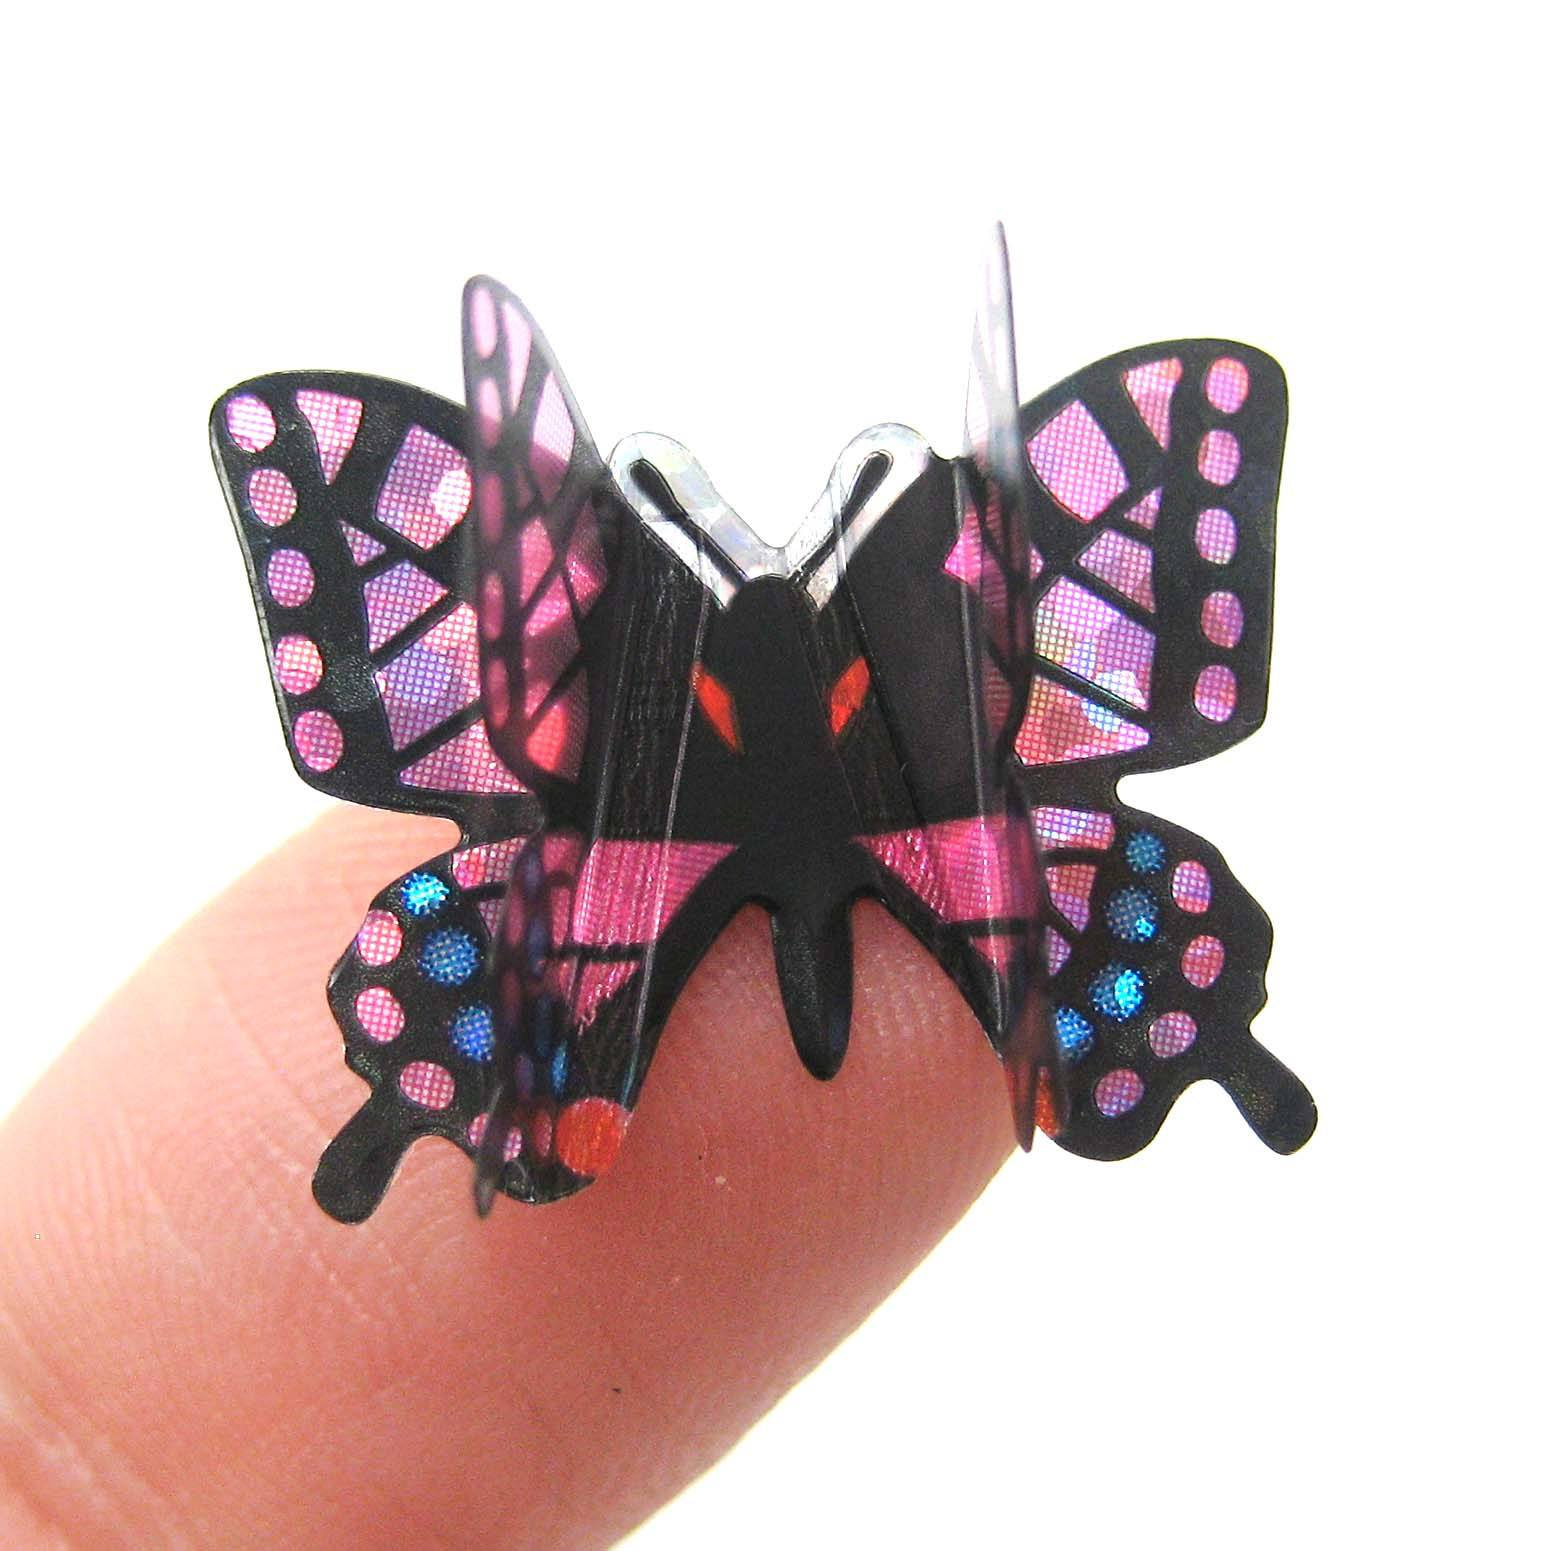 butterfly-shaped-3d-insect-pop-up-stickers-for-scrapbooking-and-decorating